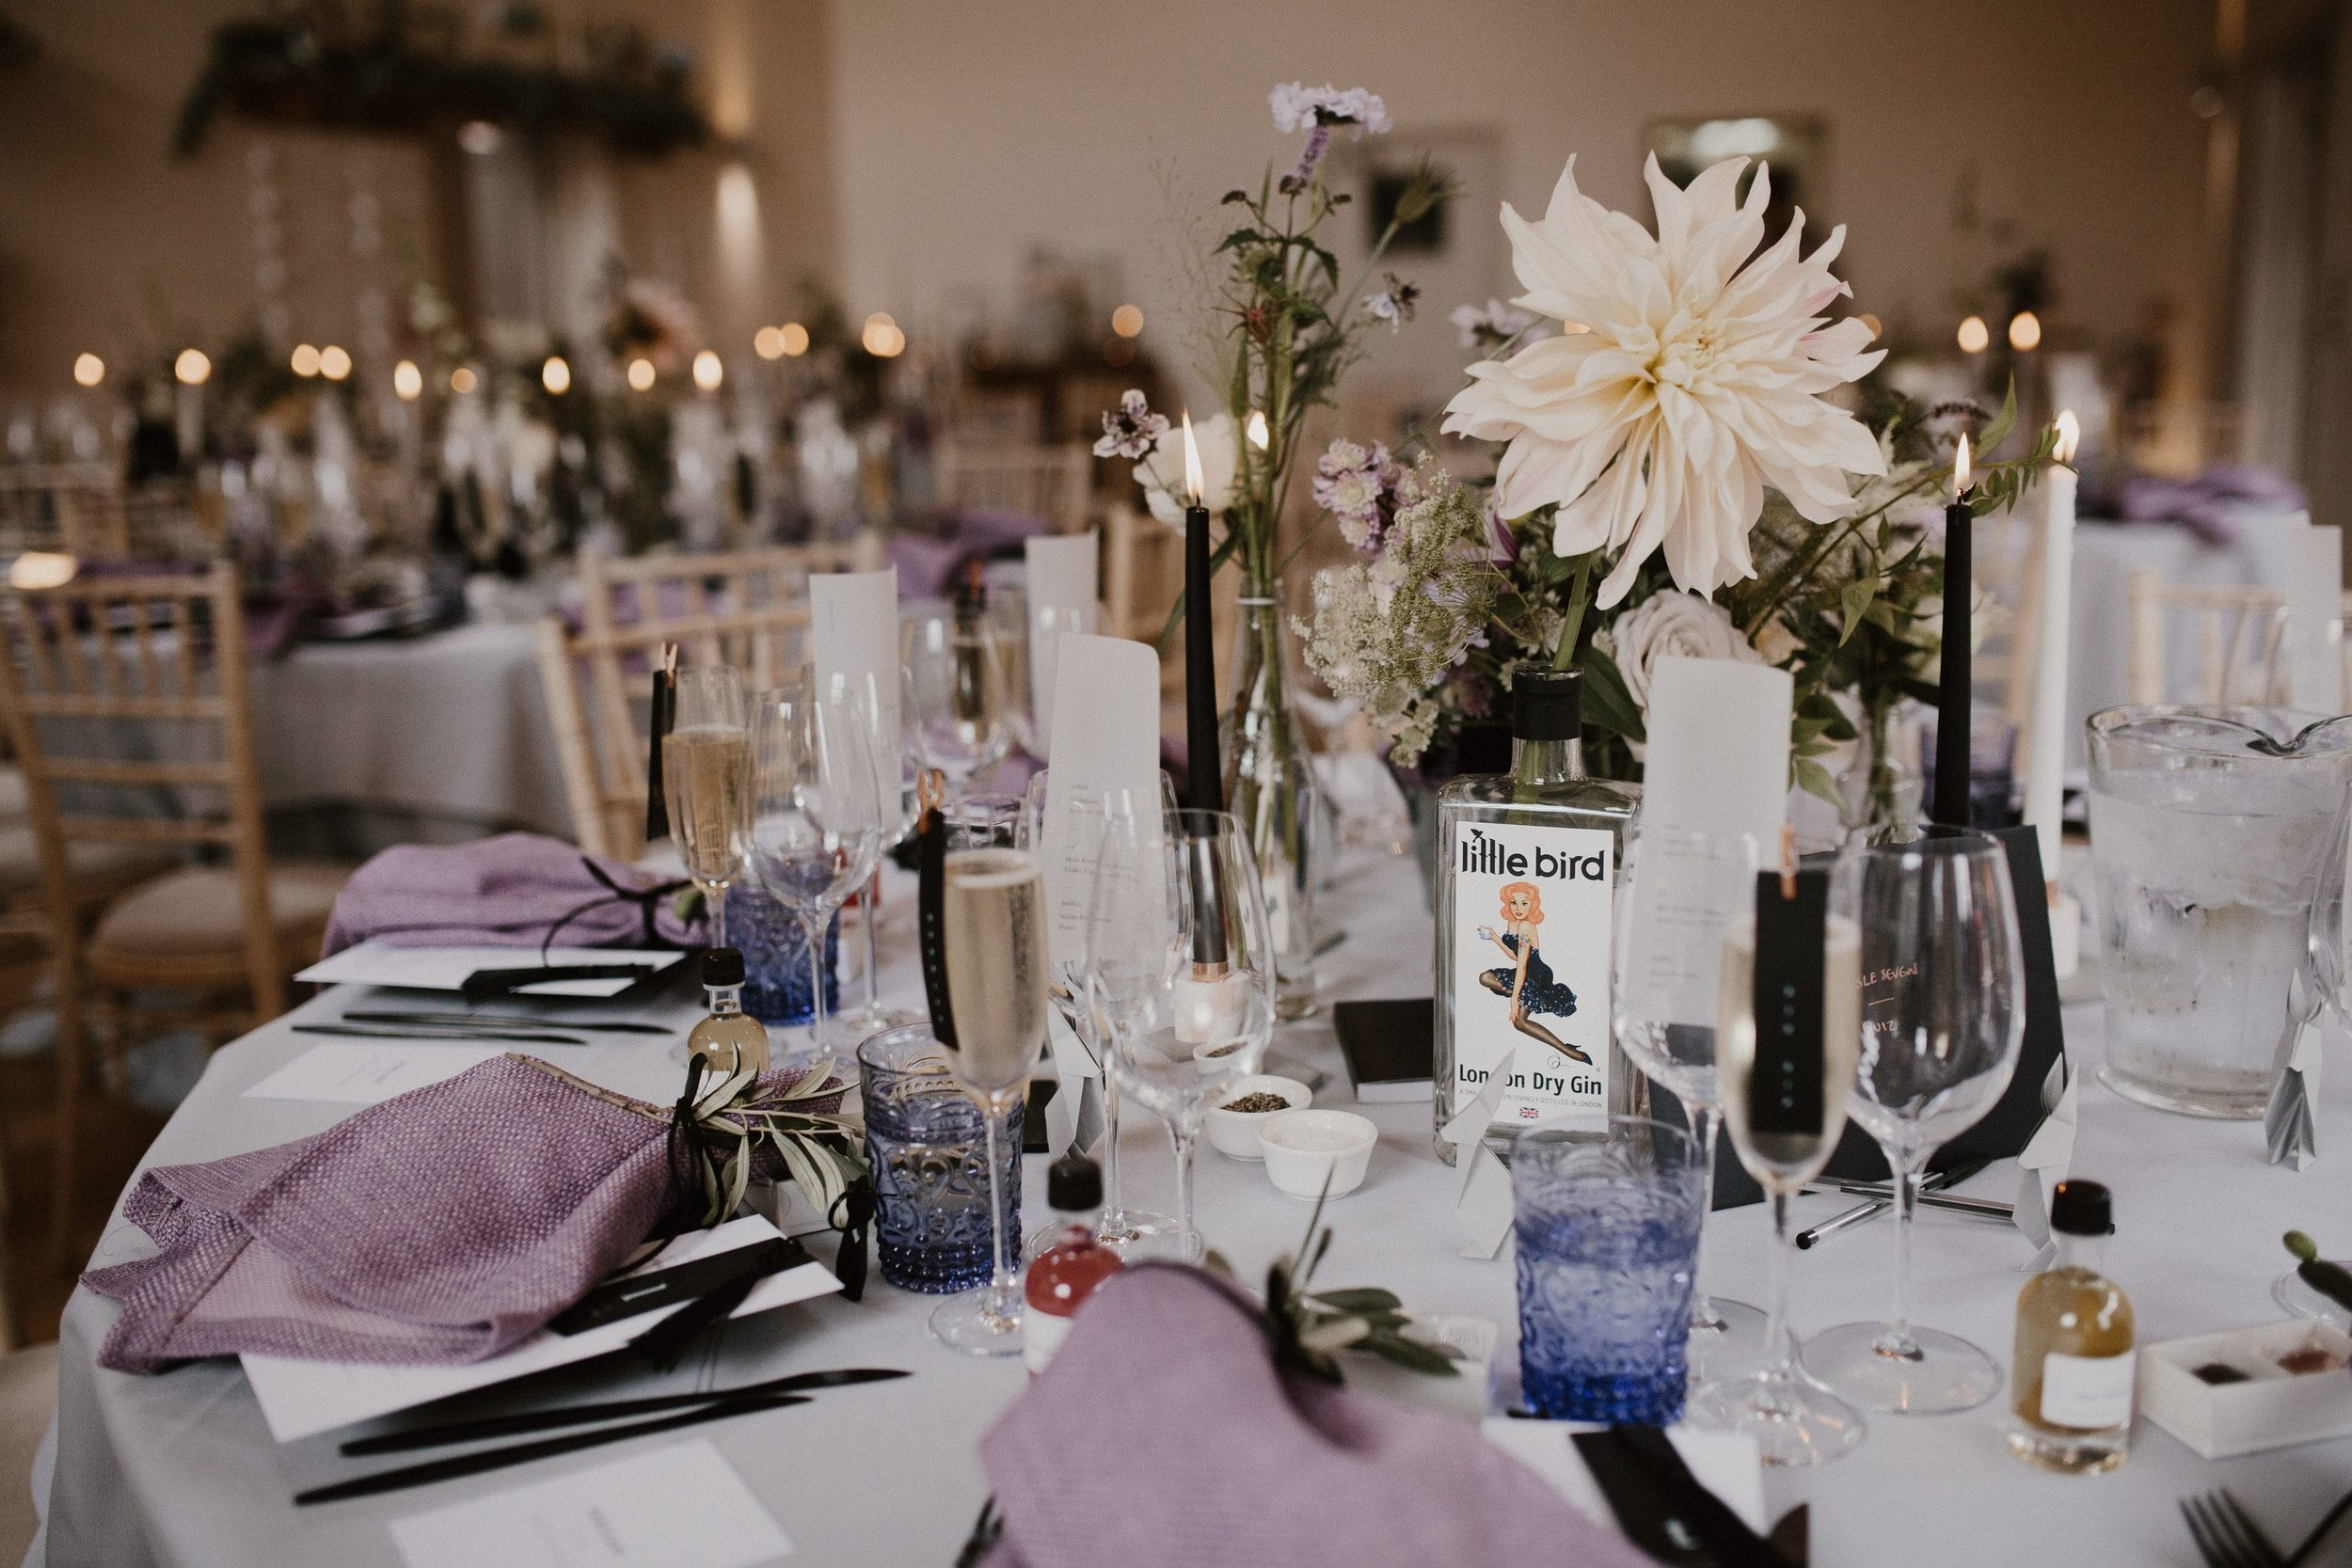 Nat and Tom - 01 - Venue and Details - Sara Lincoln Photography-86-min.jpg